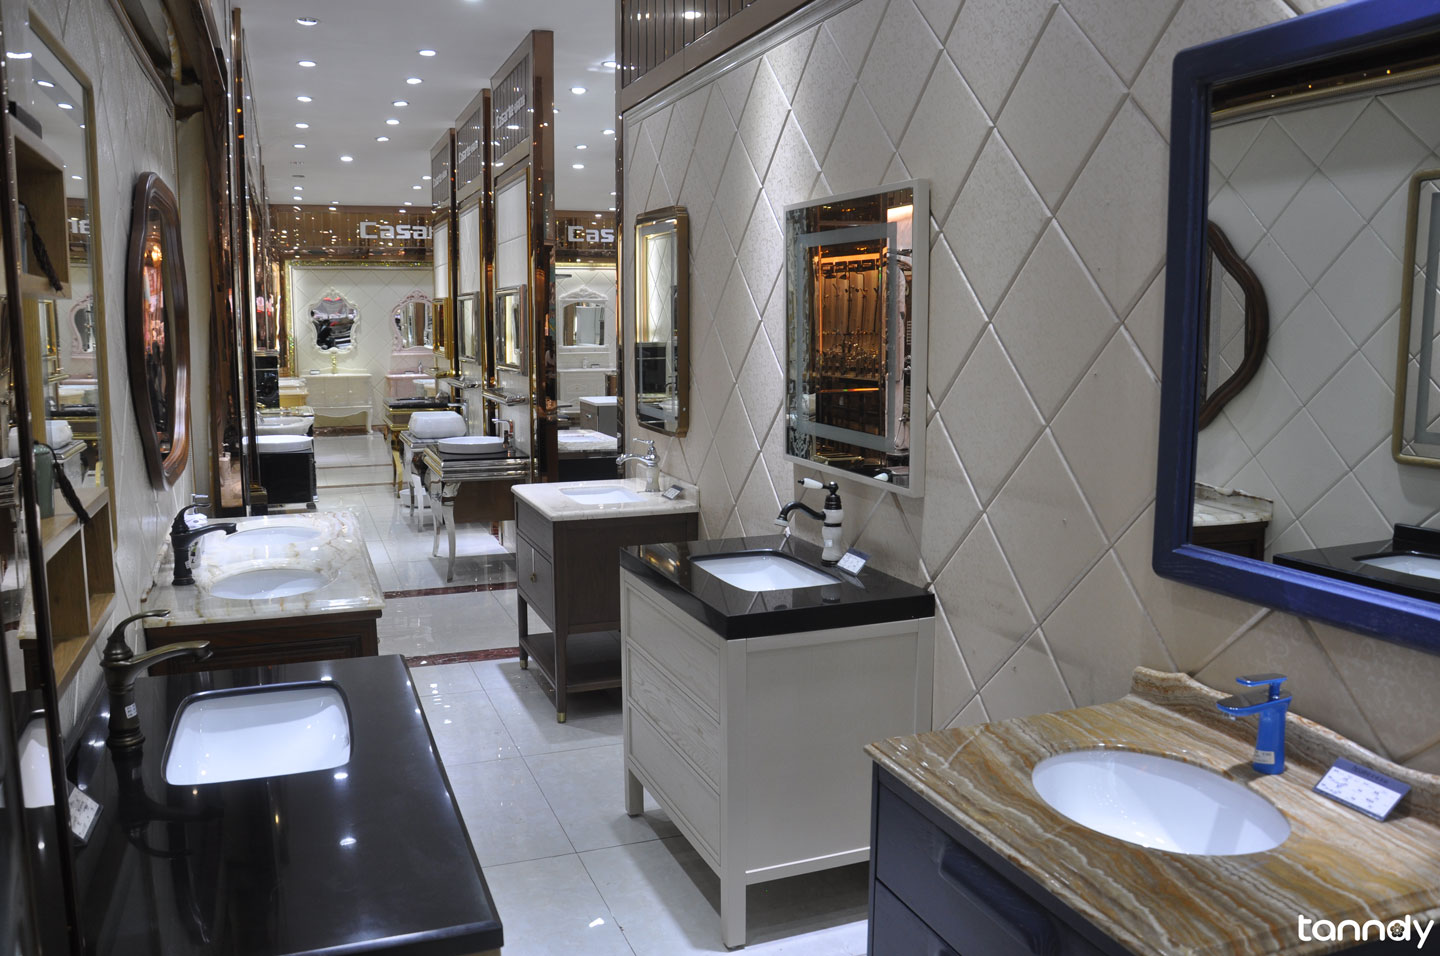 Foshan-Sanitary-market-bathroom-cabinet-showroom